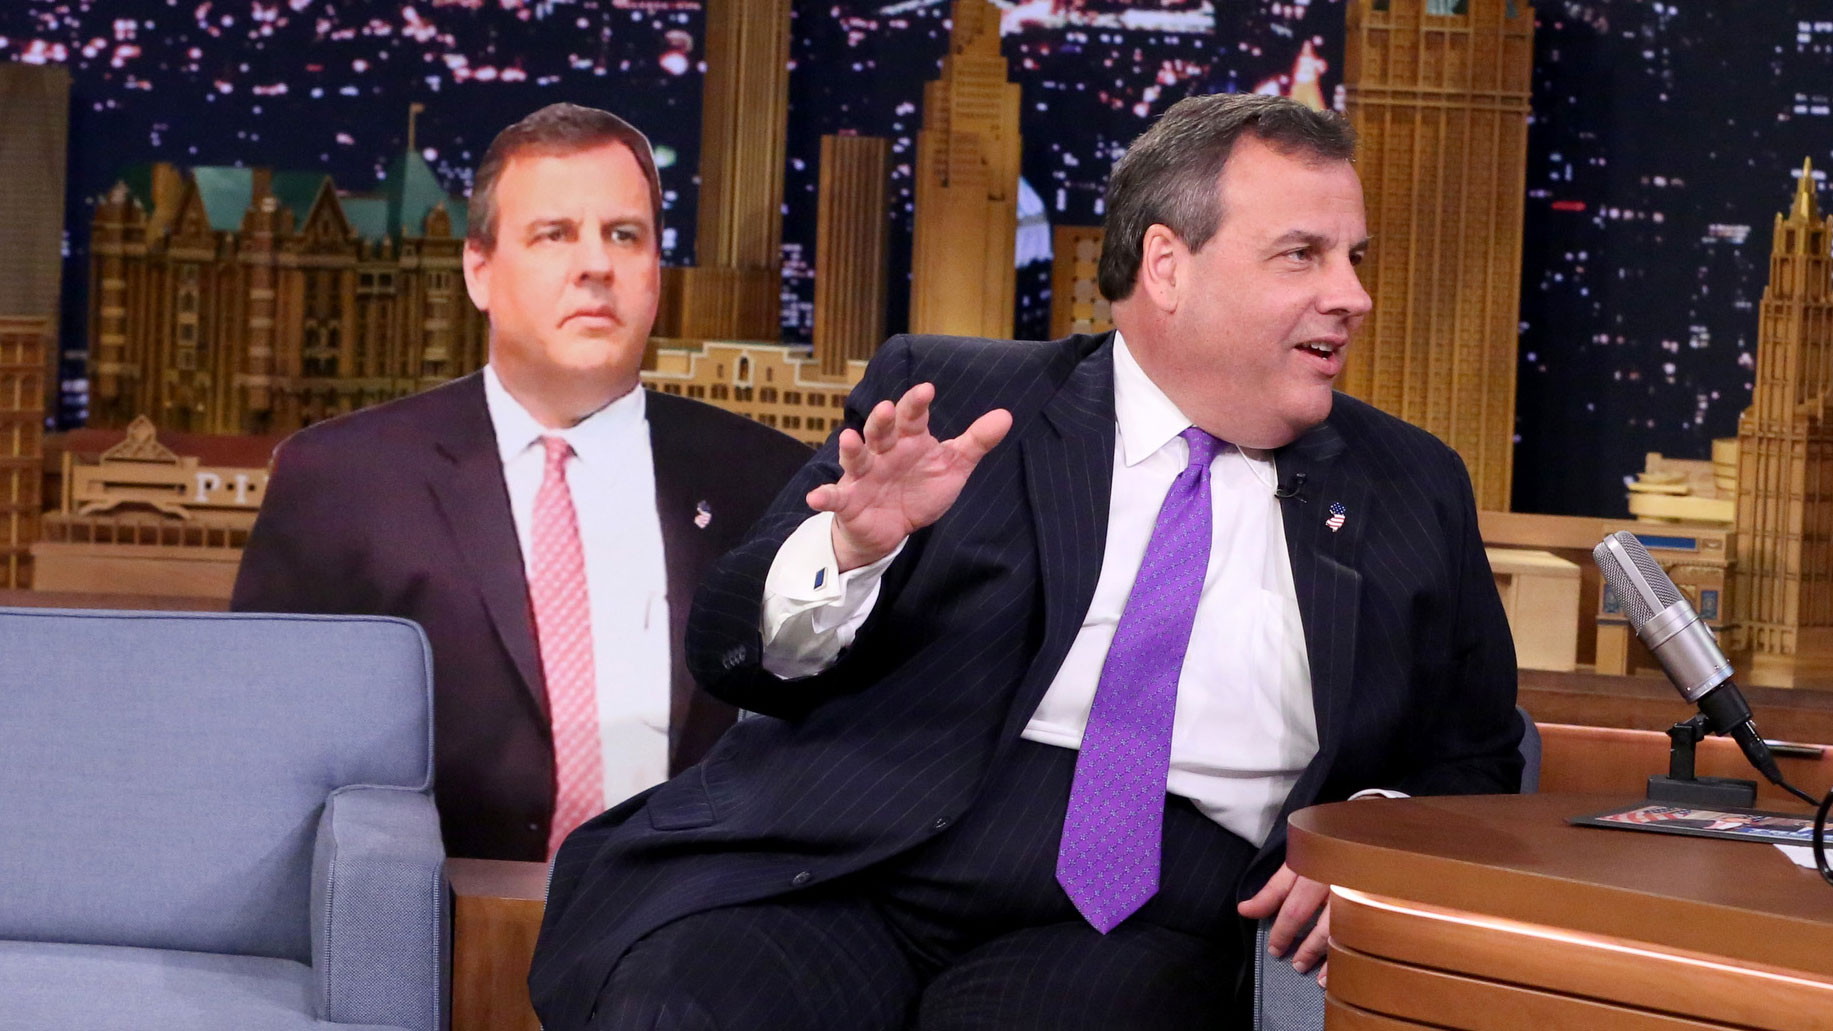 Gov. Chris Christie Explains His Awkward Super Tuesday Face Behind Donald Trump